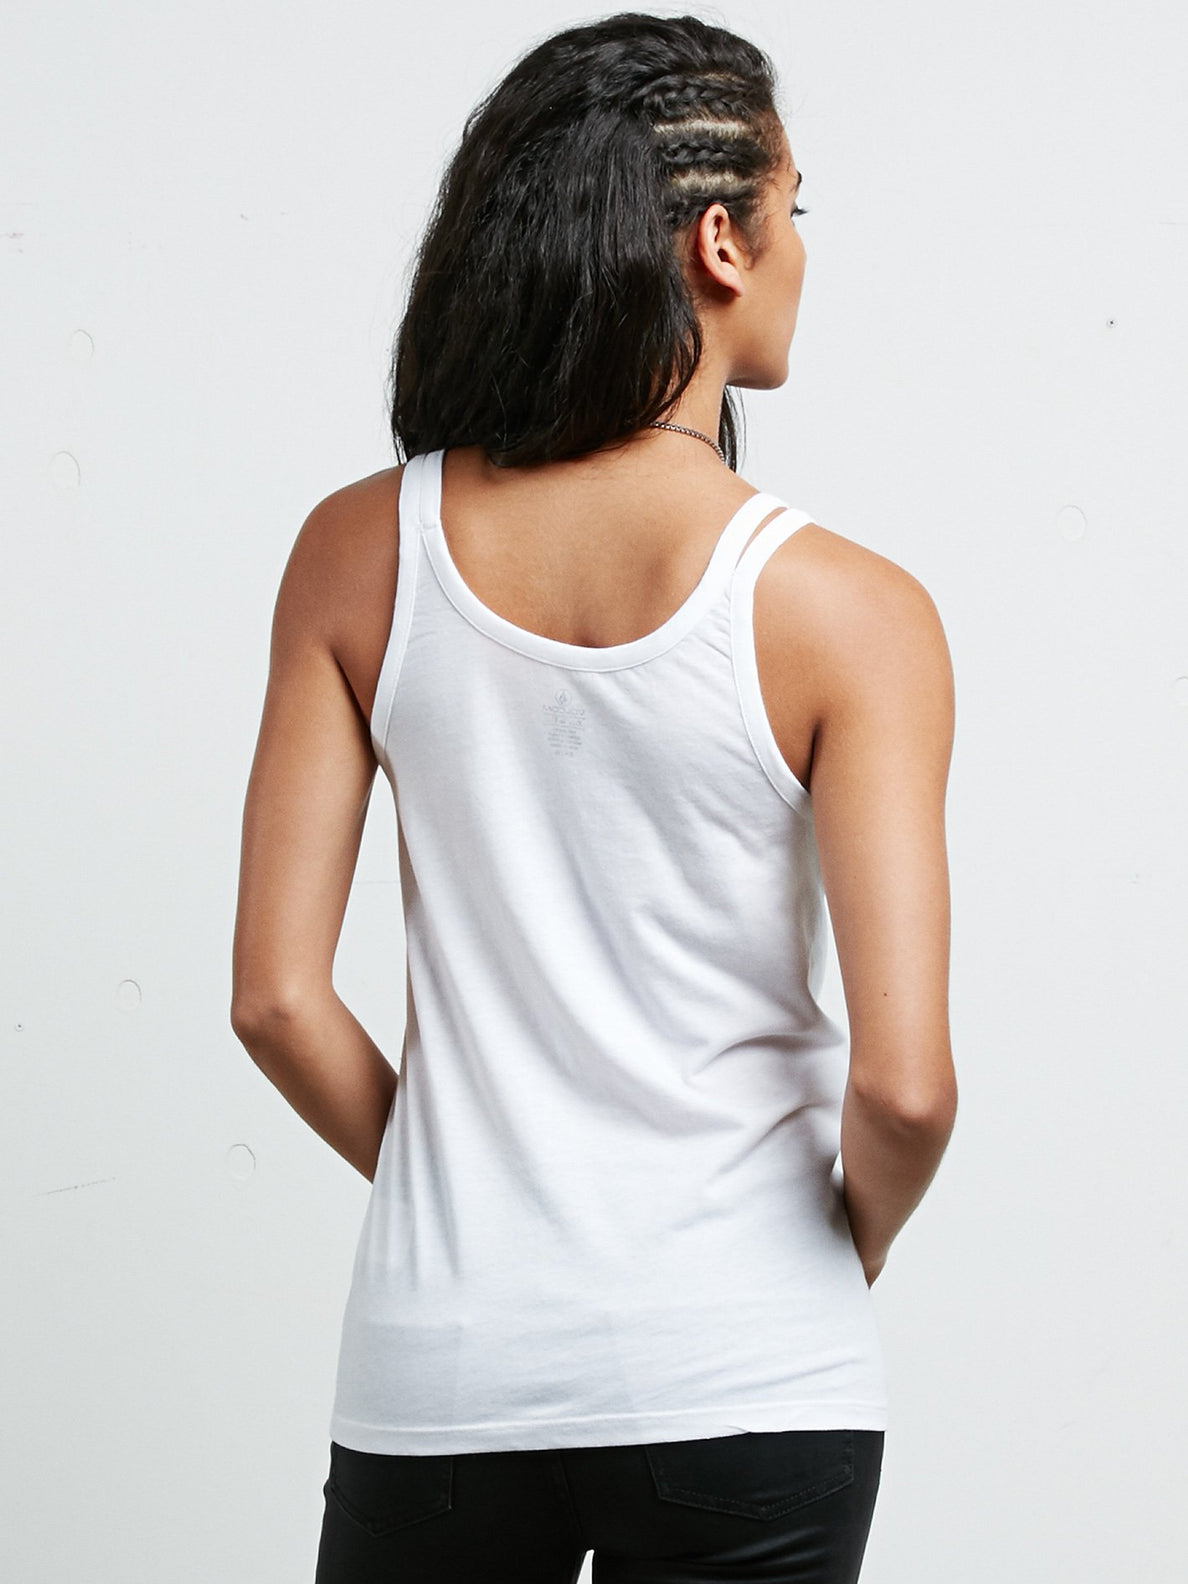 Above All Split Tank - White